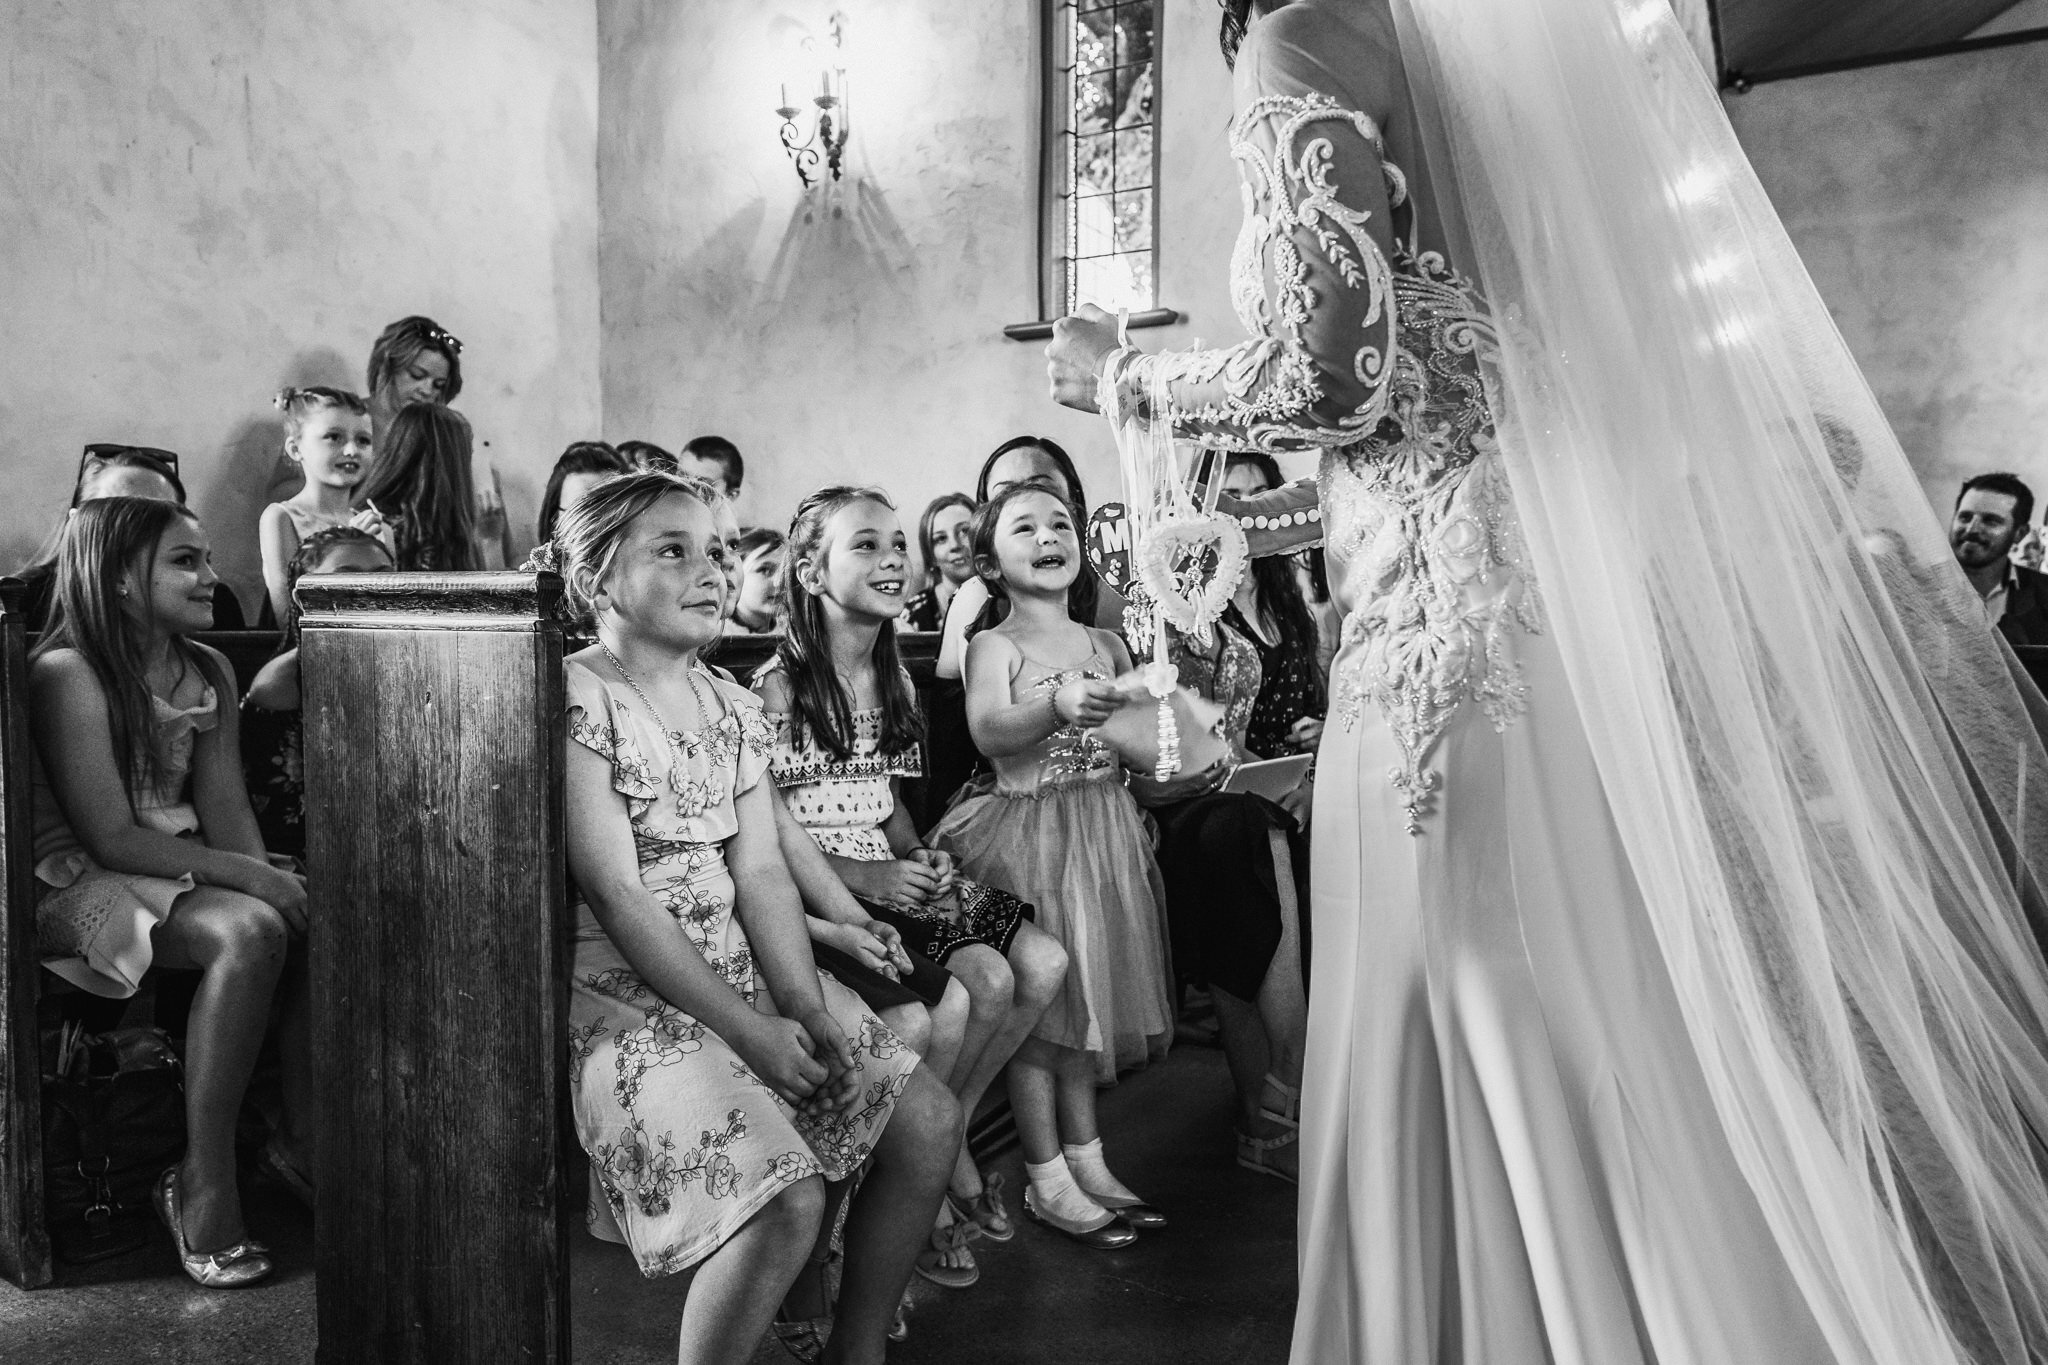 Corey Wright Photographer_Candid Wedding Moments_049.jpg